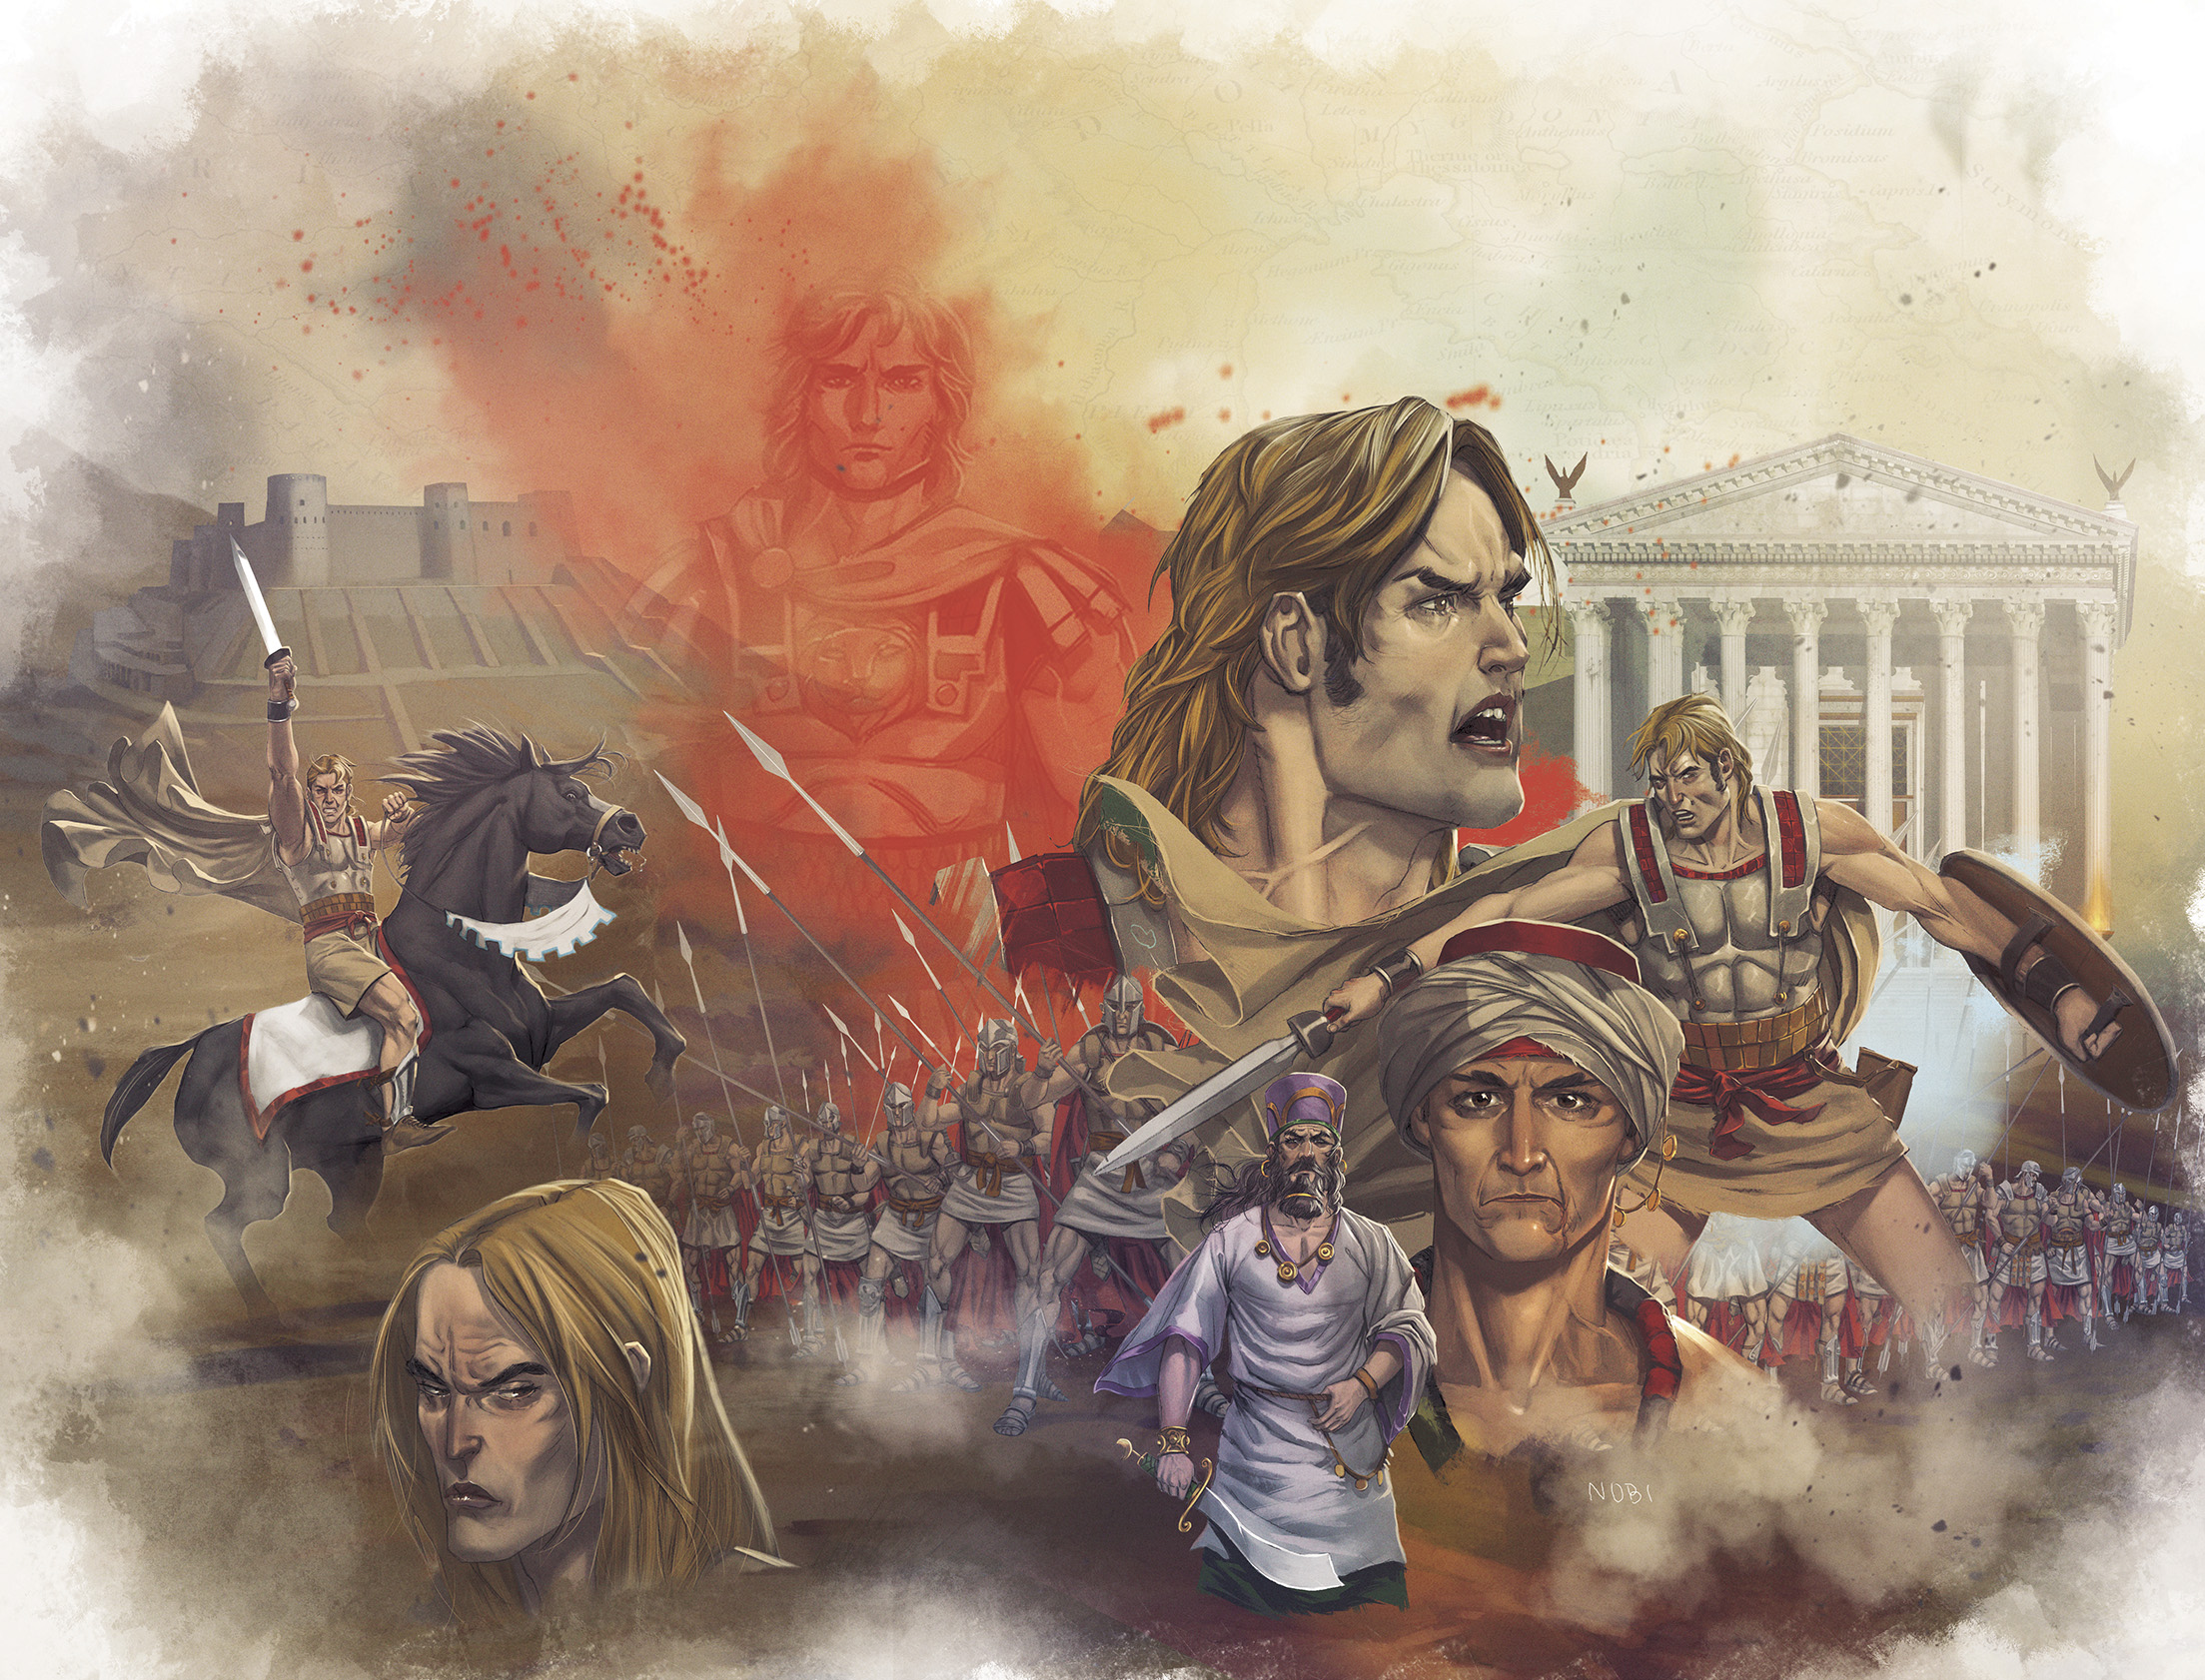 Alexander The Great, Graphic novel (click on the link icon for more)